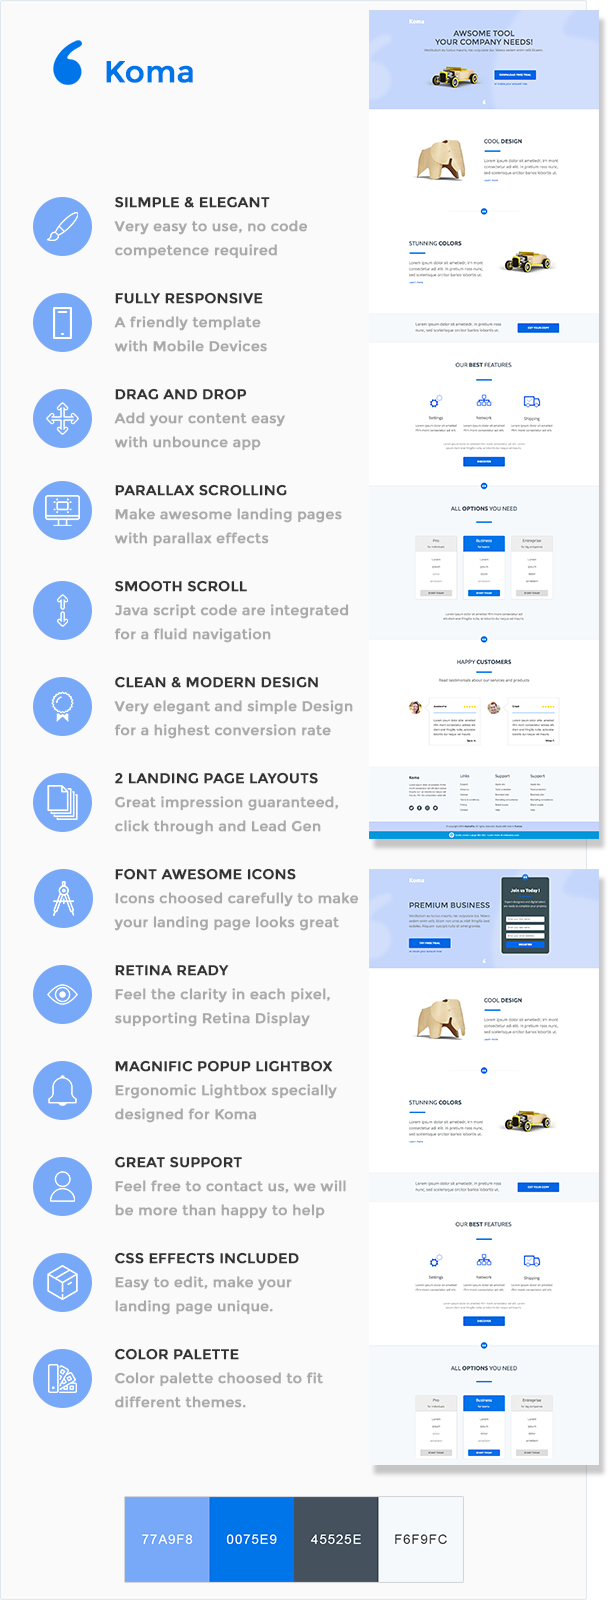 Koma - Premium Marketing Unbounce Landing Page